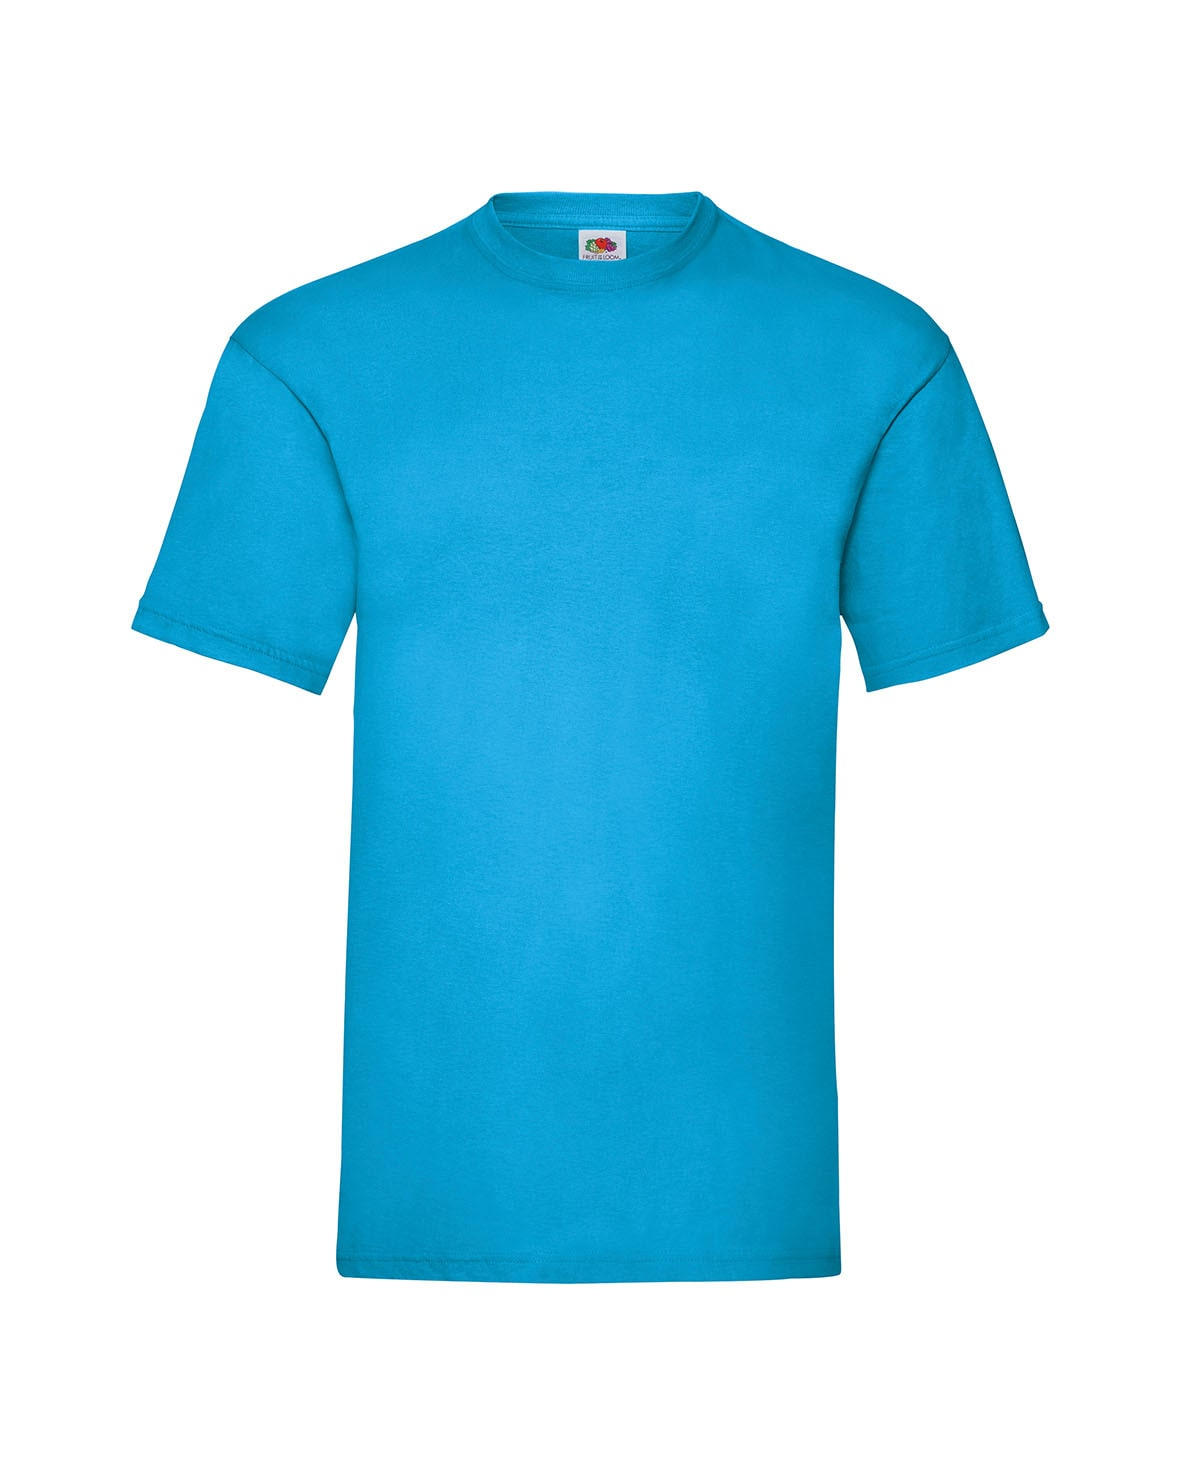 An Excellent Selection of Workwear T-Shirts. A Workwear Essential that can be Embroidered or Printed with Your Design or Logo